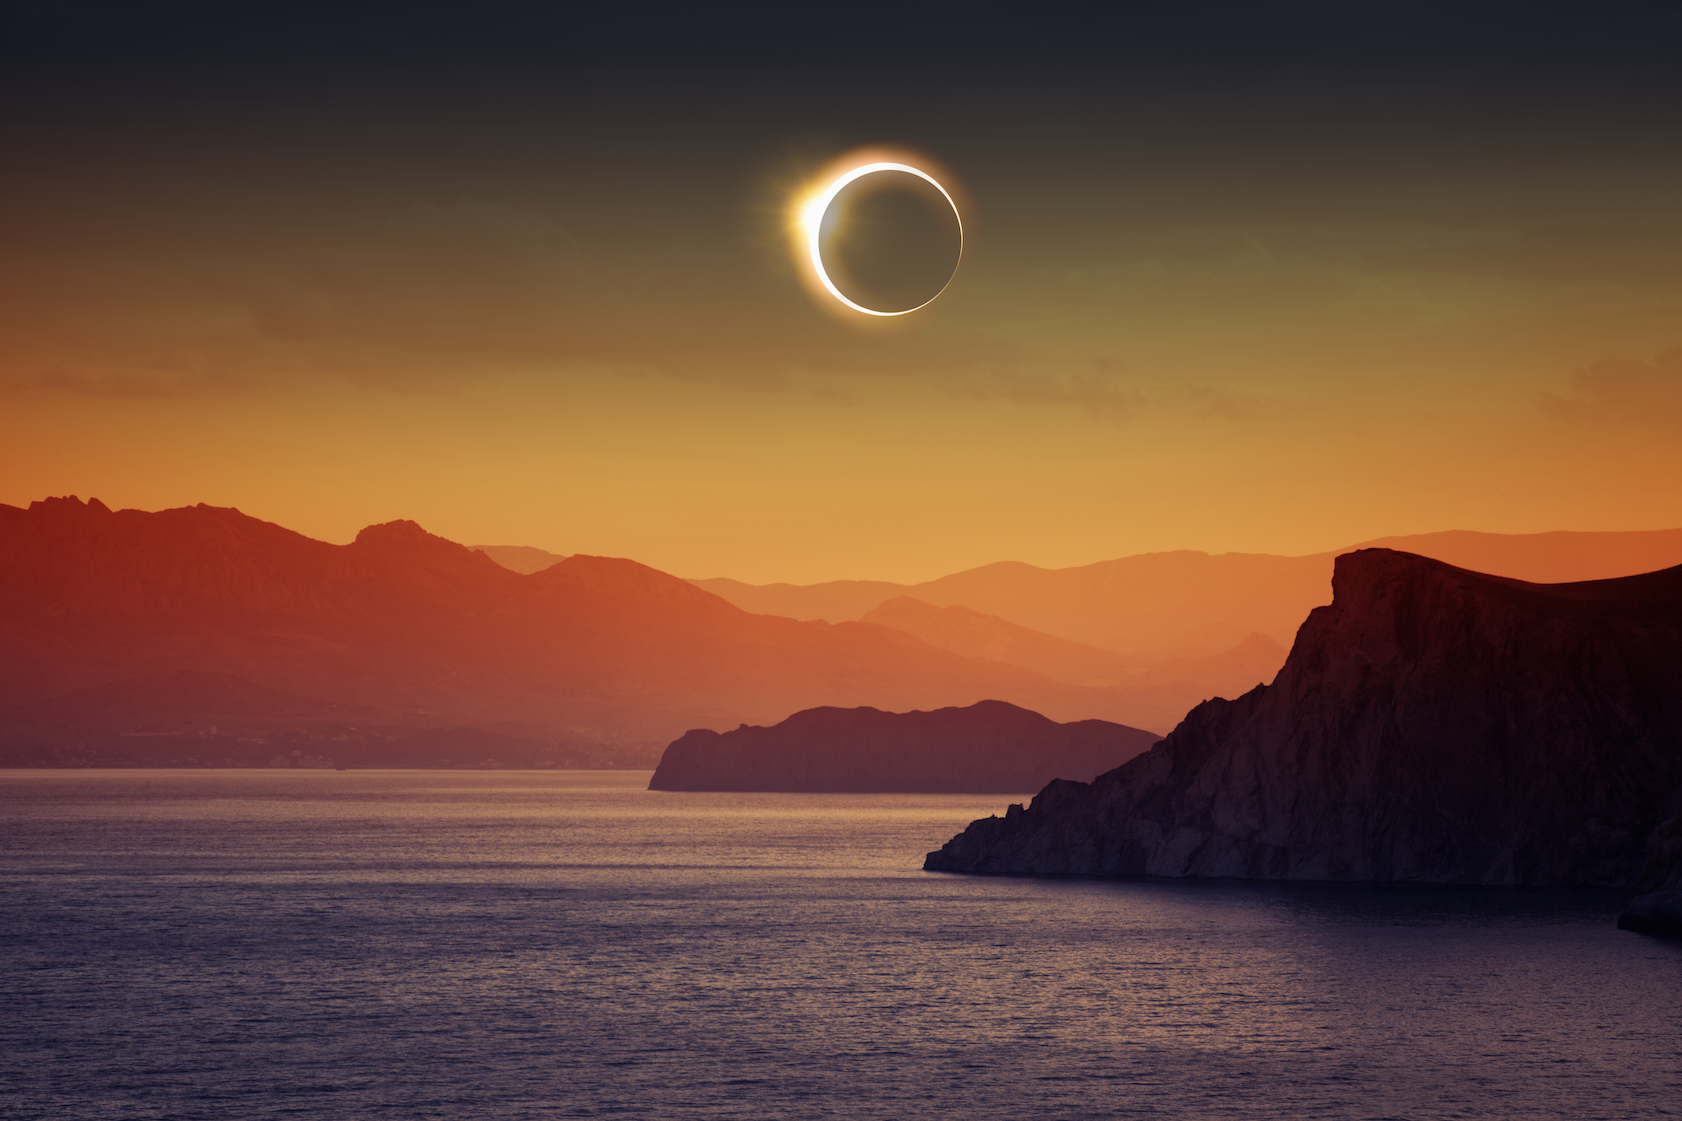 Yes, the Great American Eclipse of Monday, August 21 is likely to be as memorable as its name would suggest.